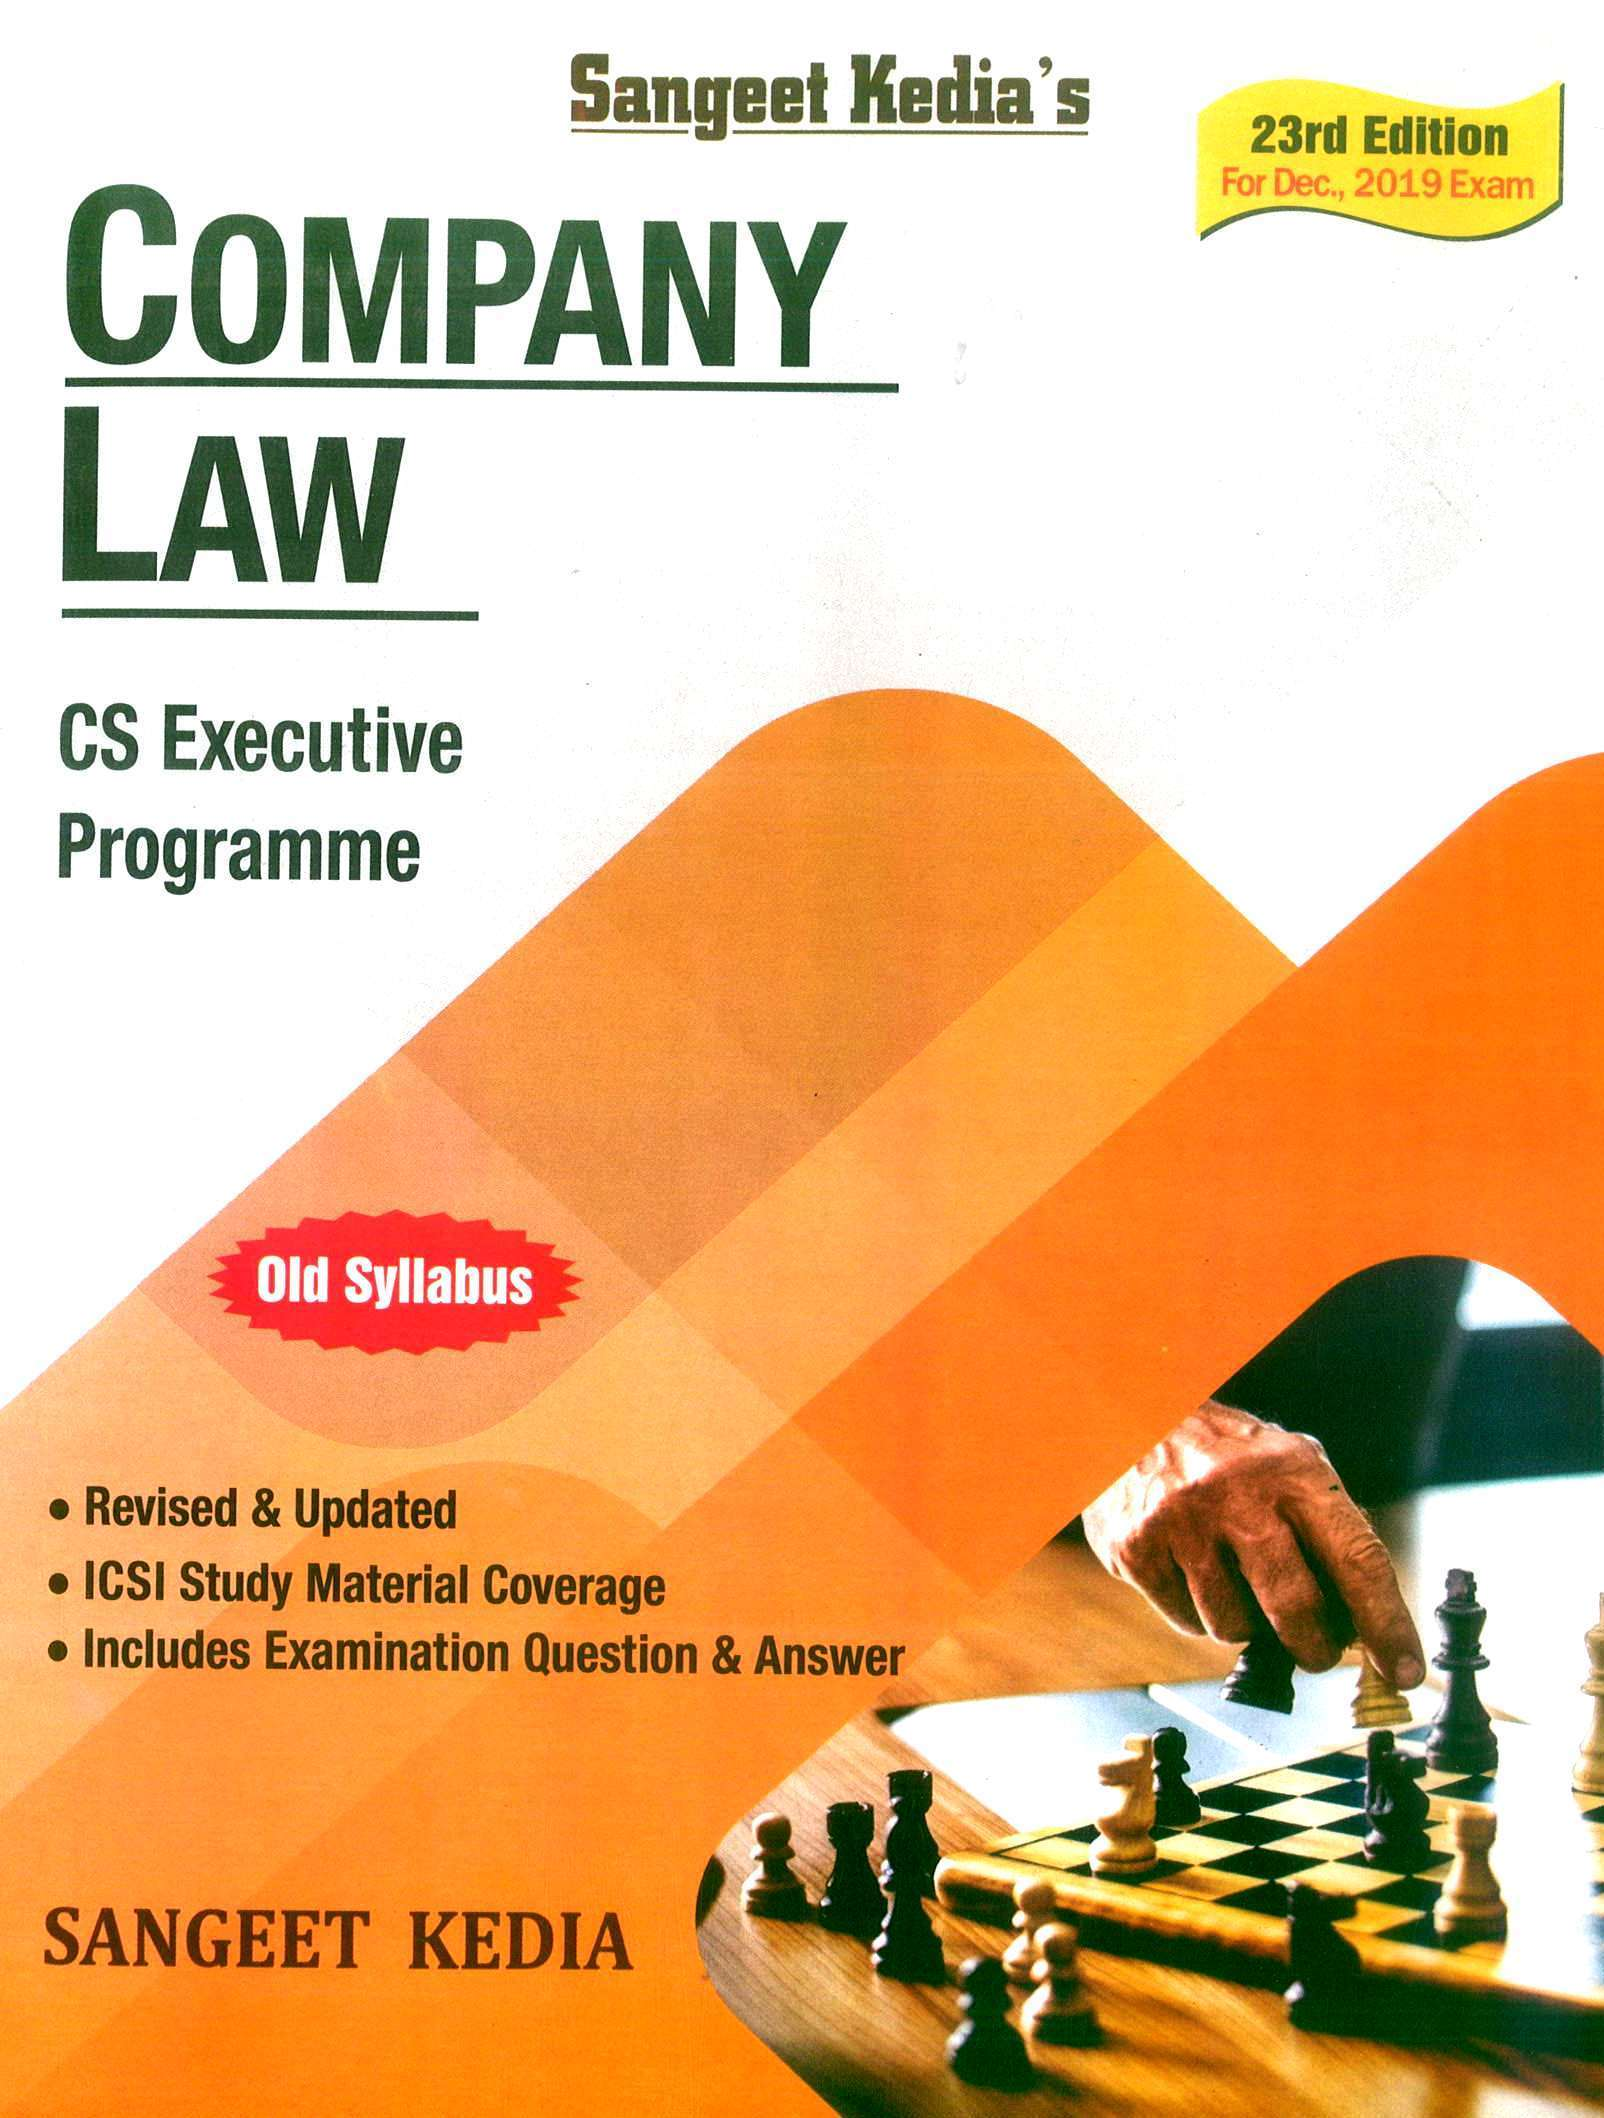 Pooja Law House For CS Executive Programme Company Law by Sangeet Kedia (New Syllabus) Applicable For Dec 2019 Exam (Pooja Law House Publishing) Edition 2019